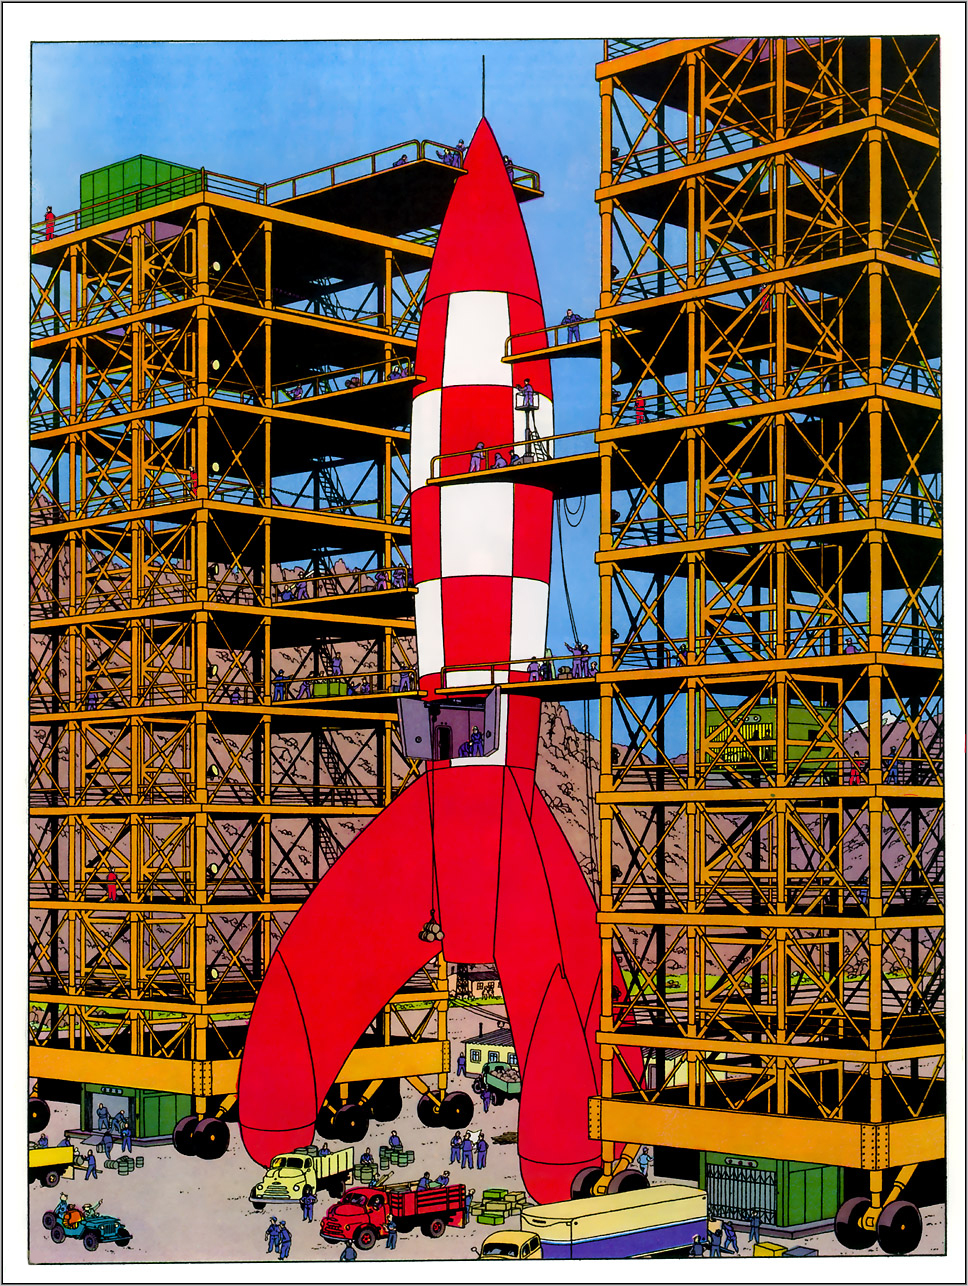 Gc4nf7x objectif lune unknown cache in hauts de france france created by fmo6666 - Fusee de tintin a colorier ...